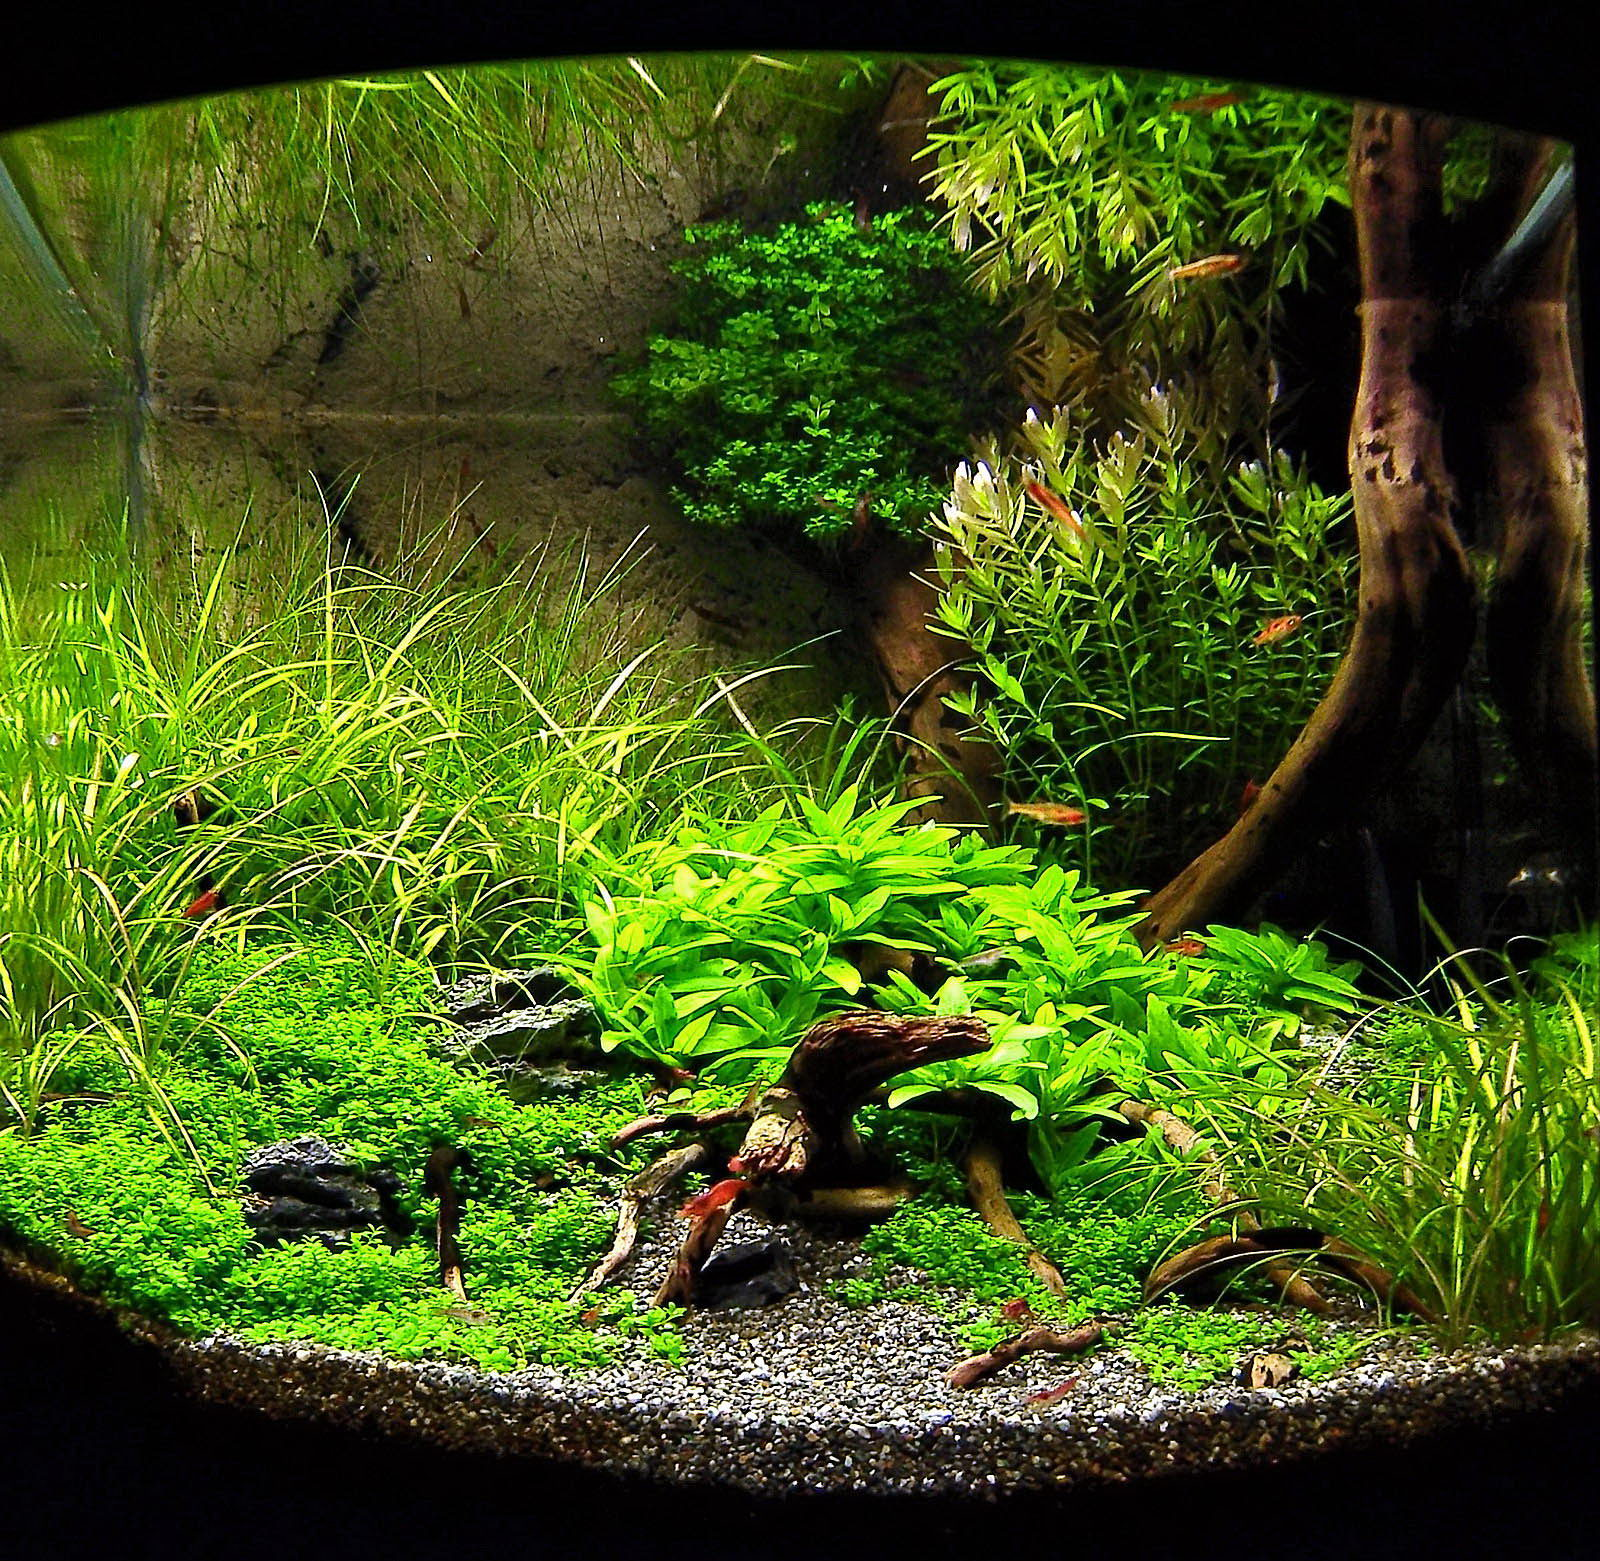 This Highly Attractive Nano Tank Won First Place In The Nano Category Of  U201cAquatic Scapers Europe   International Aquascaping Contestu201d In 2009.